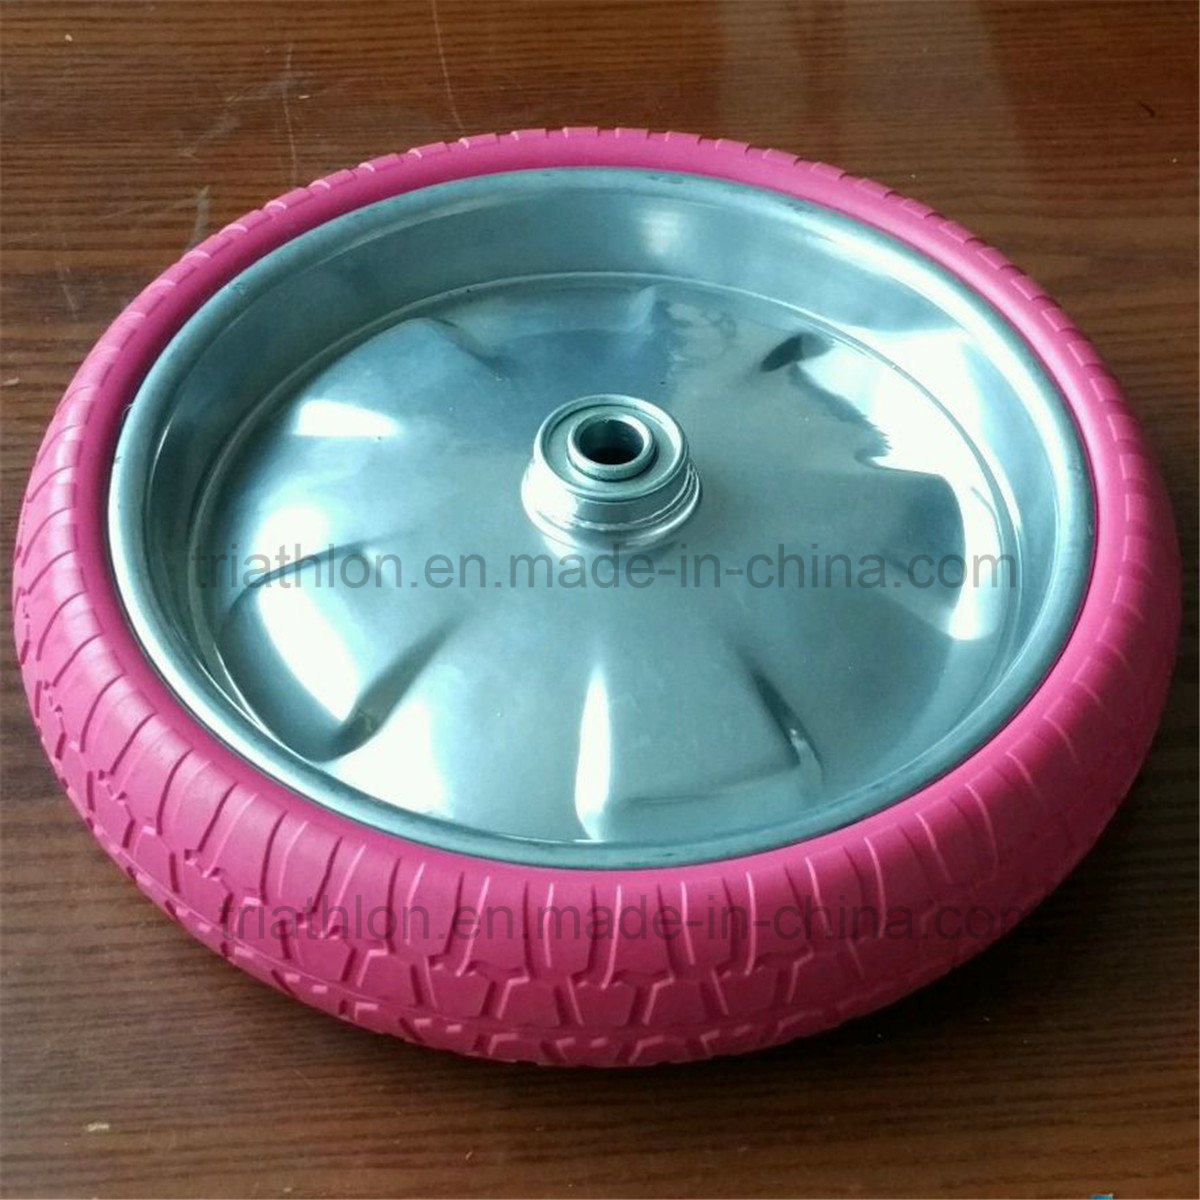 12X1.75 12X2 12X2.125 12X3 Flat Free Bicycle Wheelchair Foam Wheel